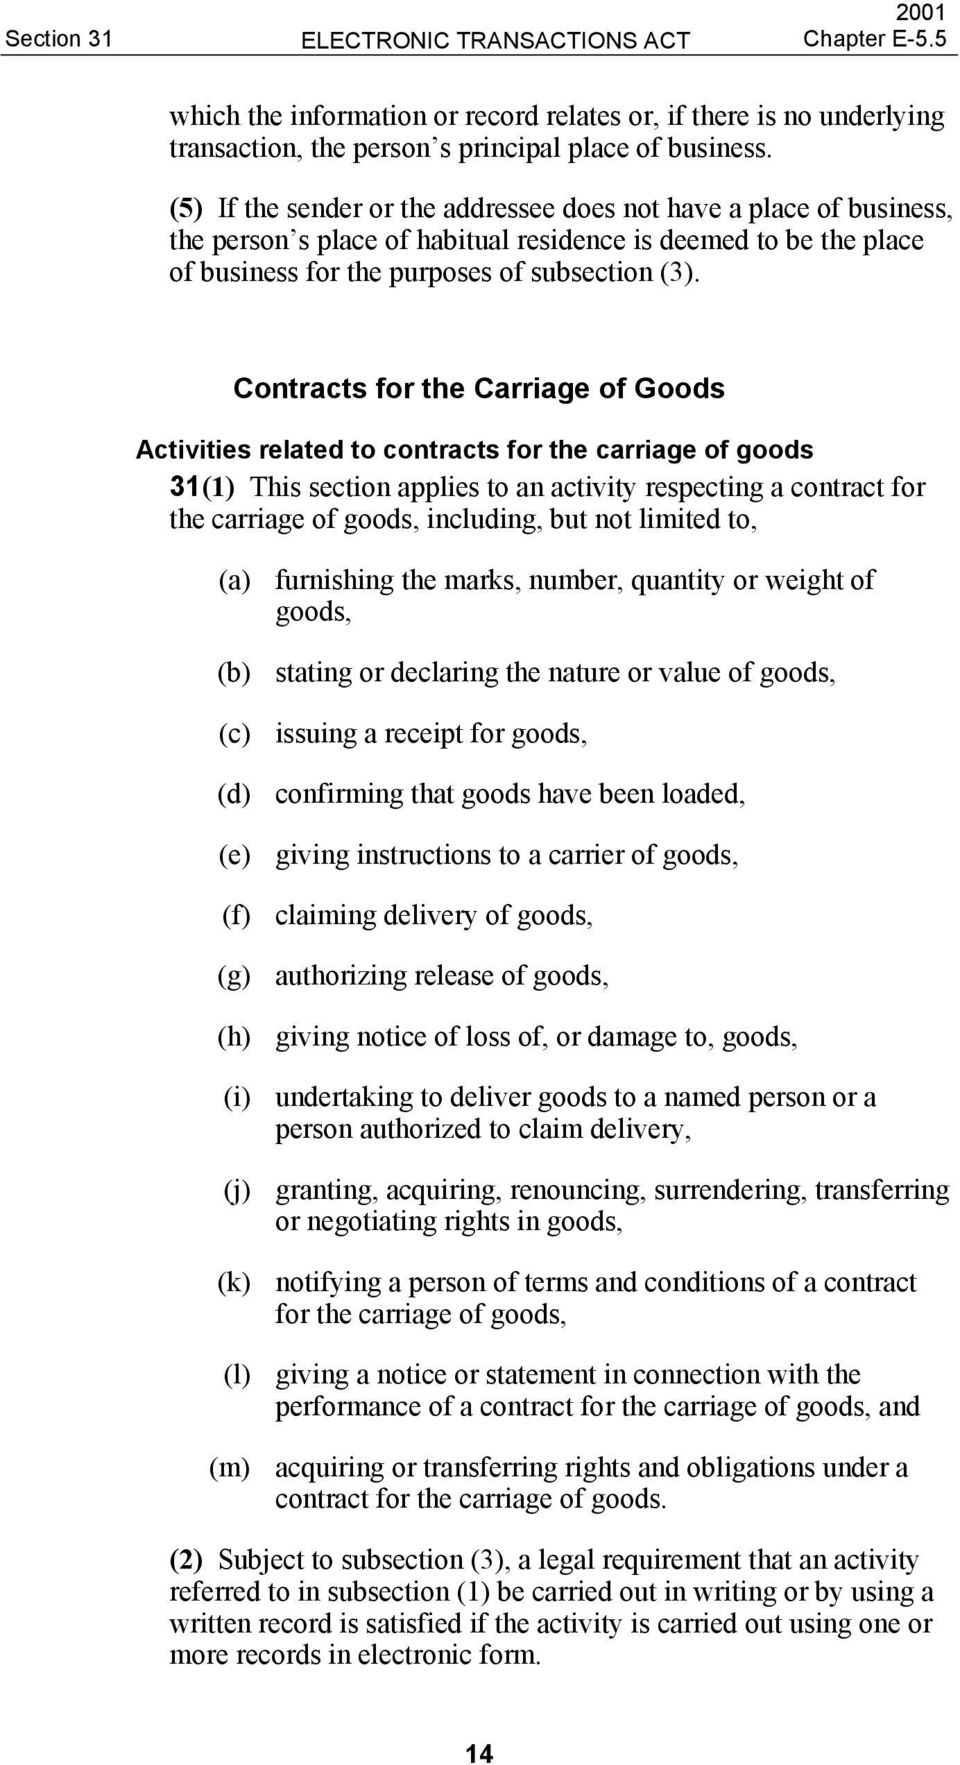 Contracts for the Carriage of Goods Activities related to contracts for the carriage of goods 31(1) This section applies to an activity respecting a contract for the carriage of goods, including, but